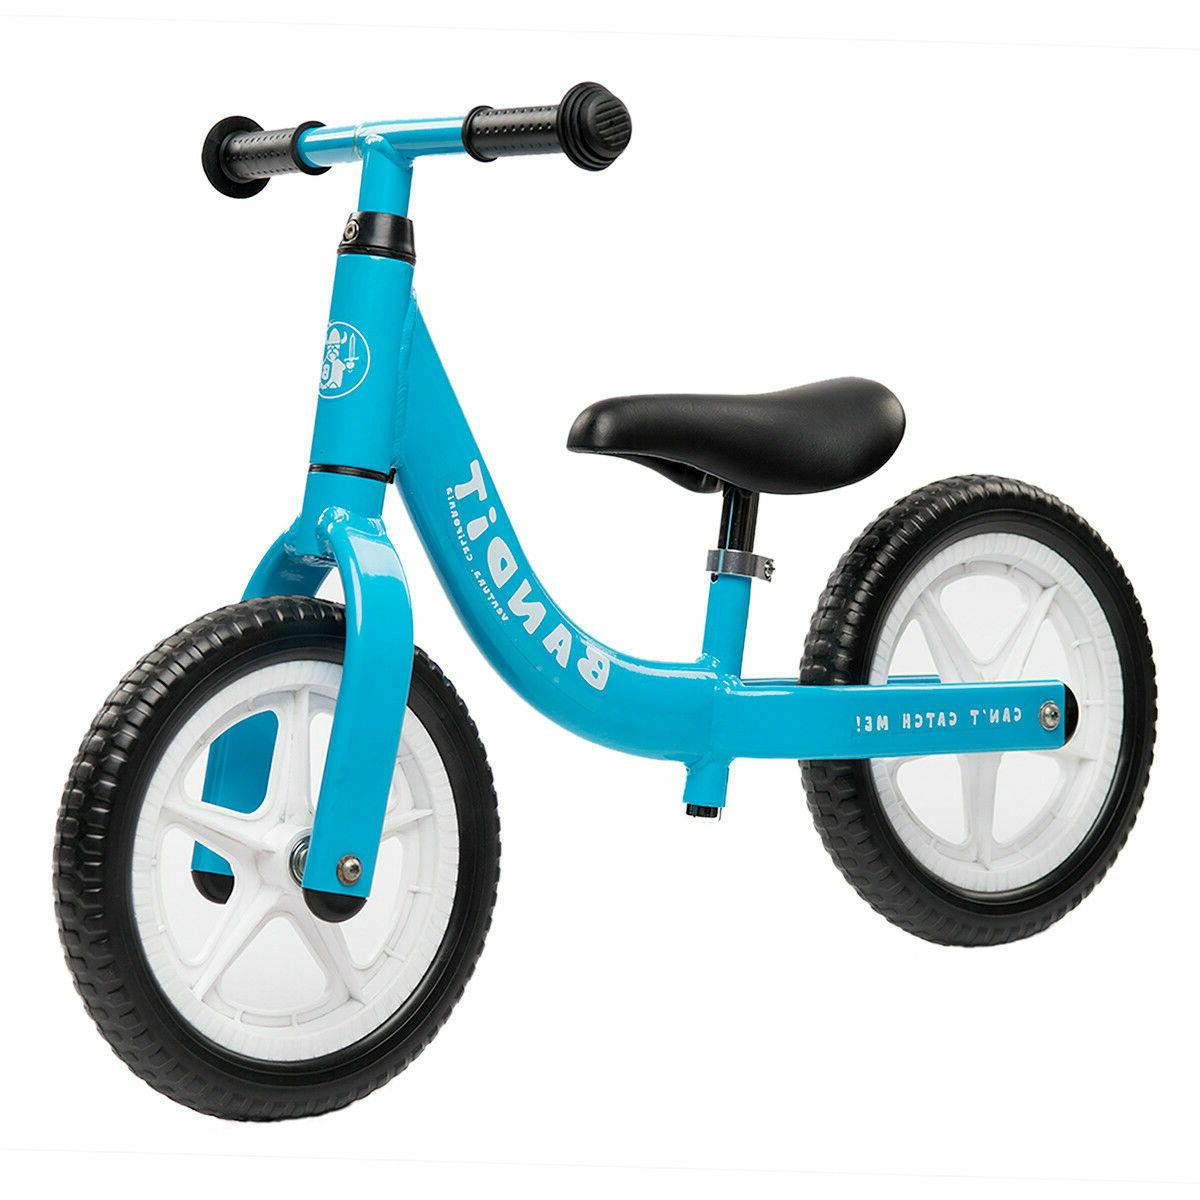 Bandit Bicycles Balance Bike Never Flat Super for 1-6 Year